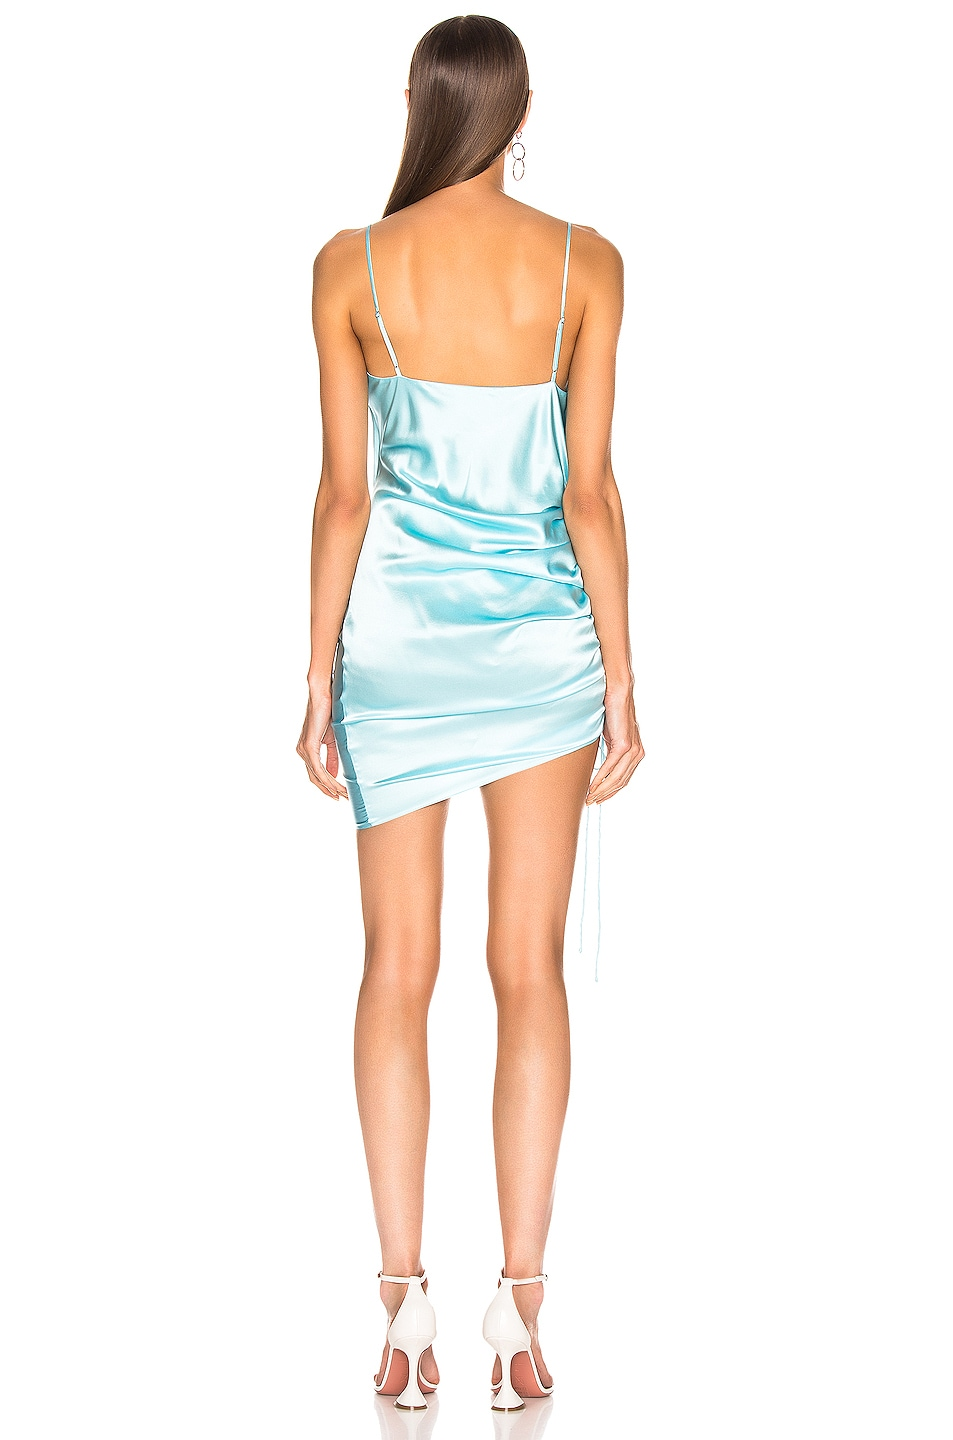 Image 4 of Cinq a Sept Astrid Dress in Blue Topaz